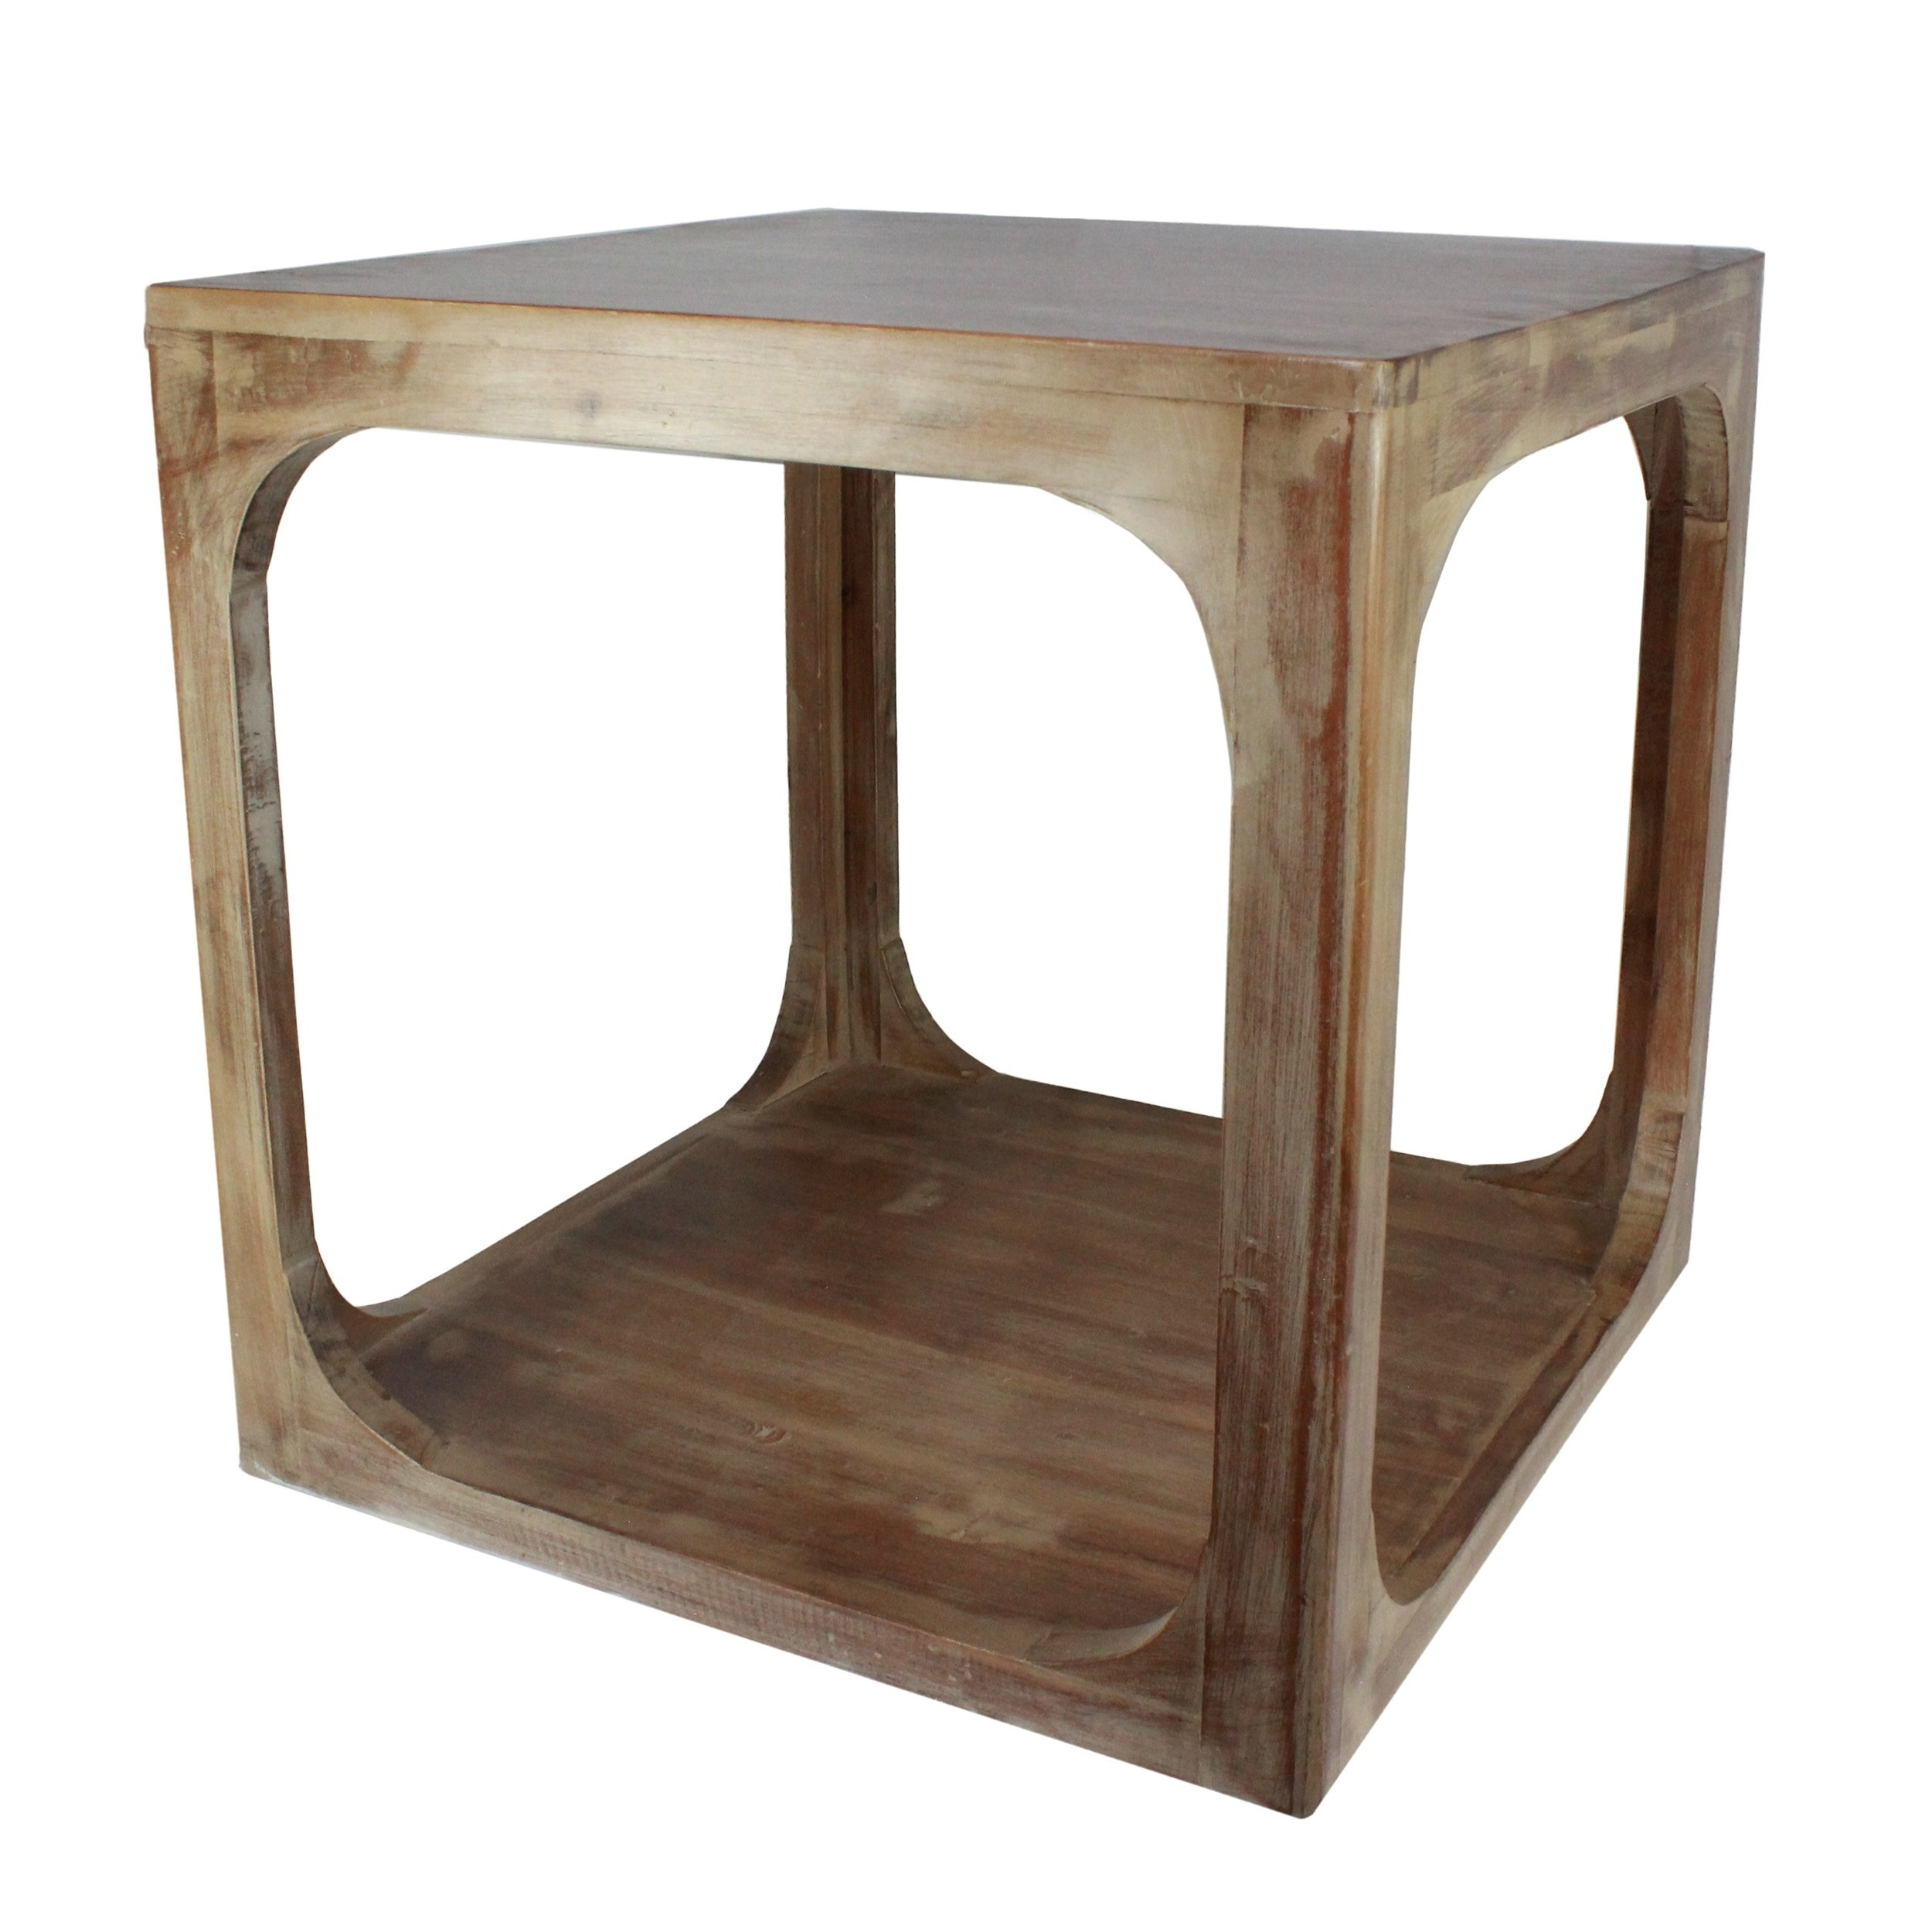 urban designs alton brown natural wood accent side table night free shipping today living room design with drawers mirror corner furniture storage baskets pier one ture frames